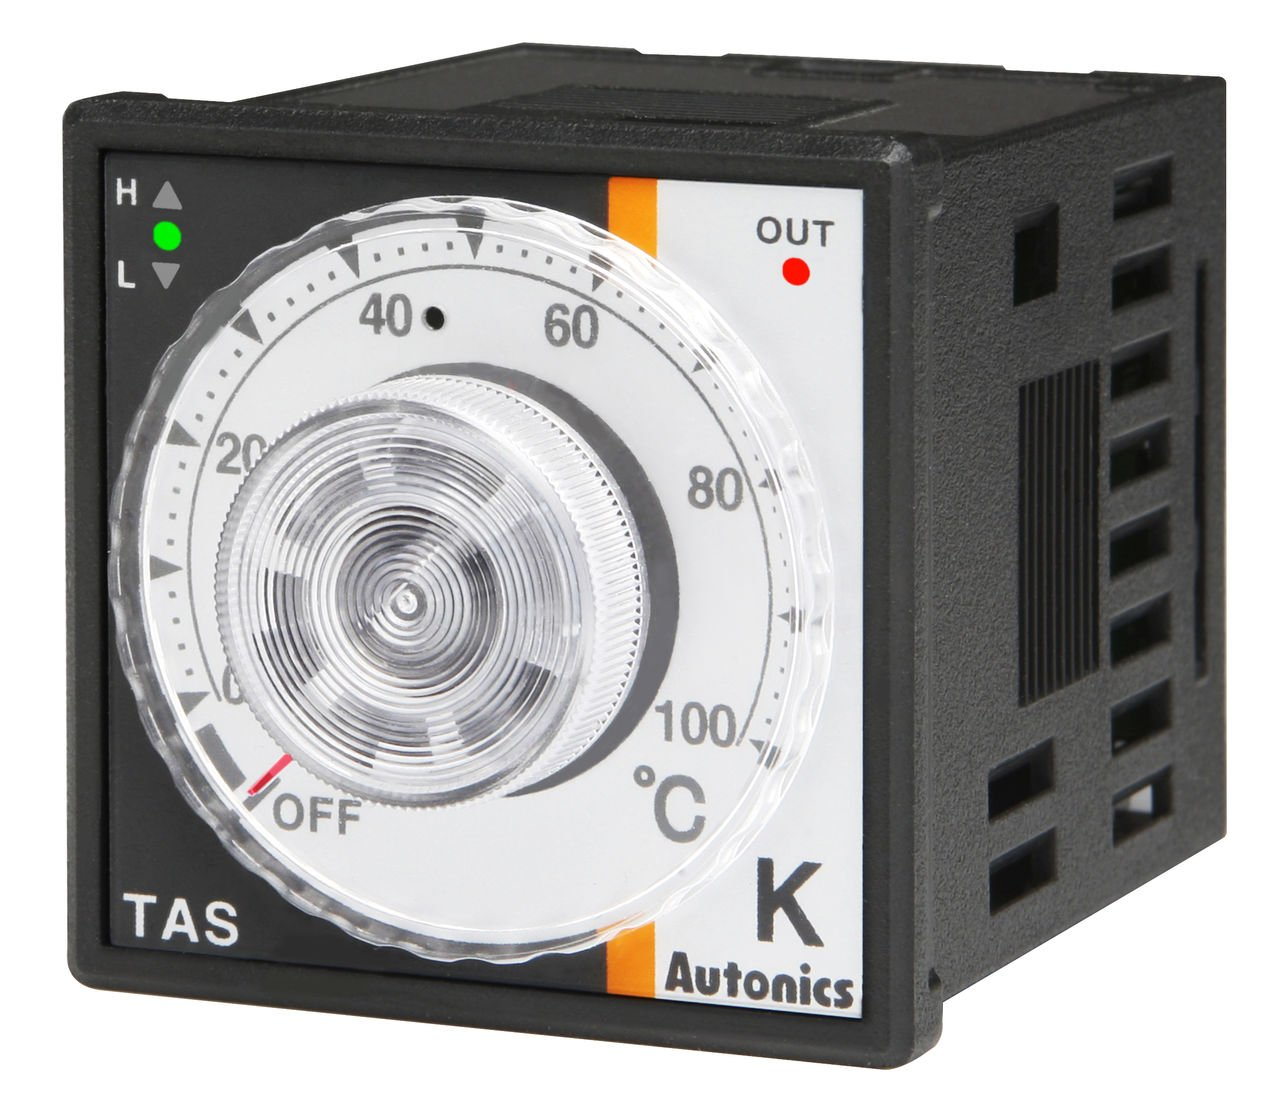 Autonics TAS-B4SK6F Temp Control, 1/16 DIN, Analog, PID Control, SSR Output, K Thermocouple, 32 to 1112 F, 100-240 VAC by Autonics USA, Inc